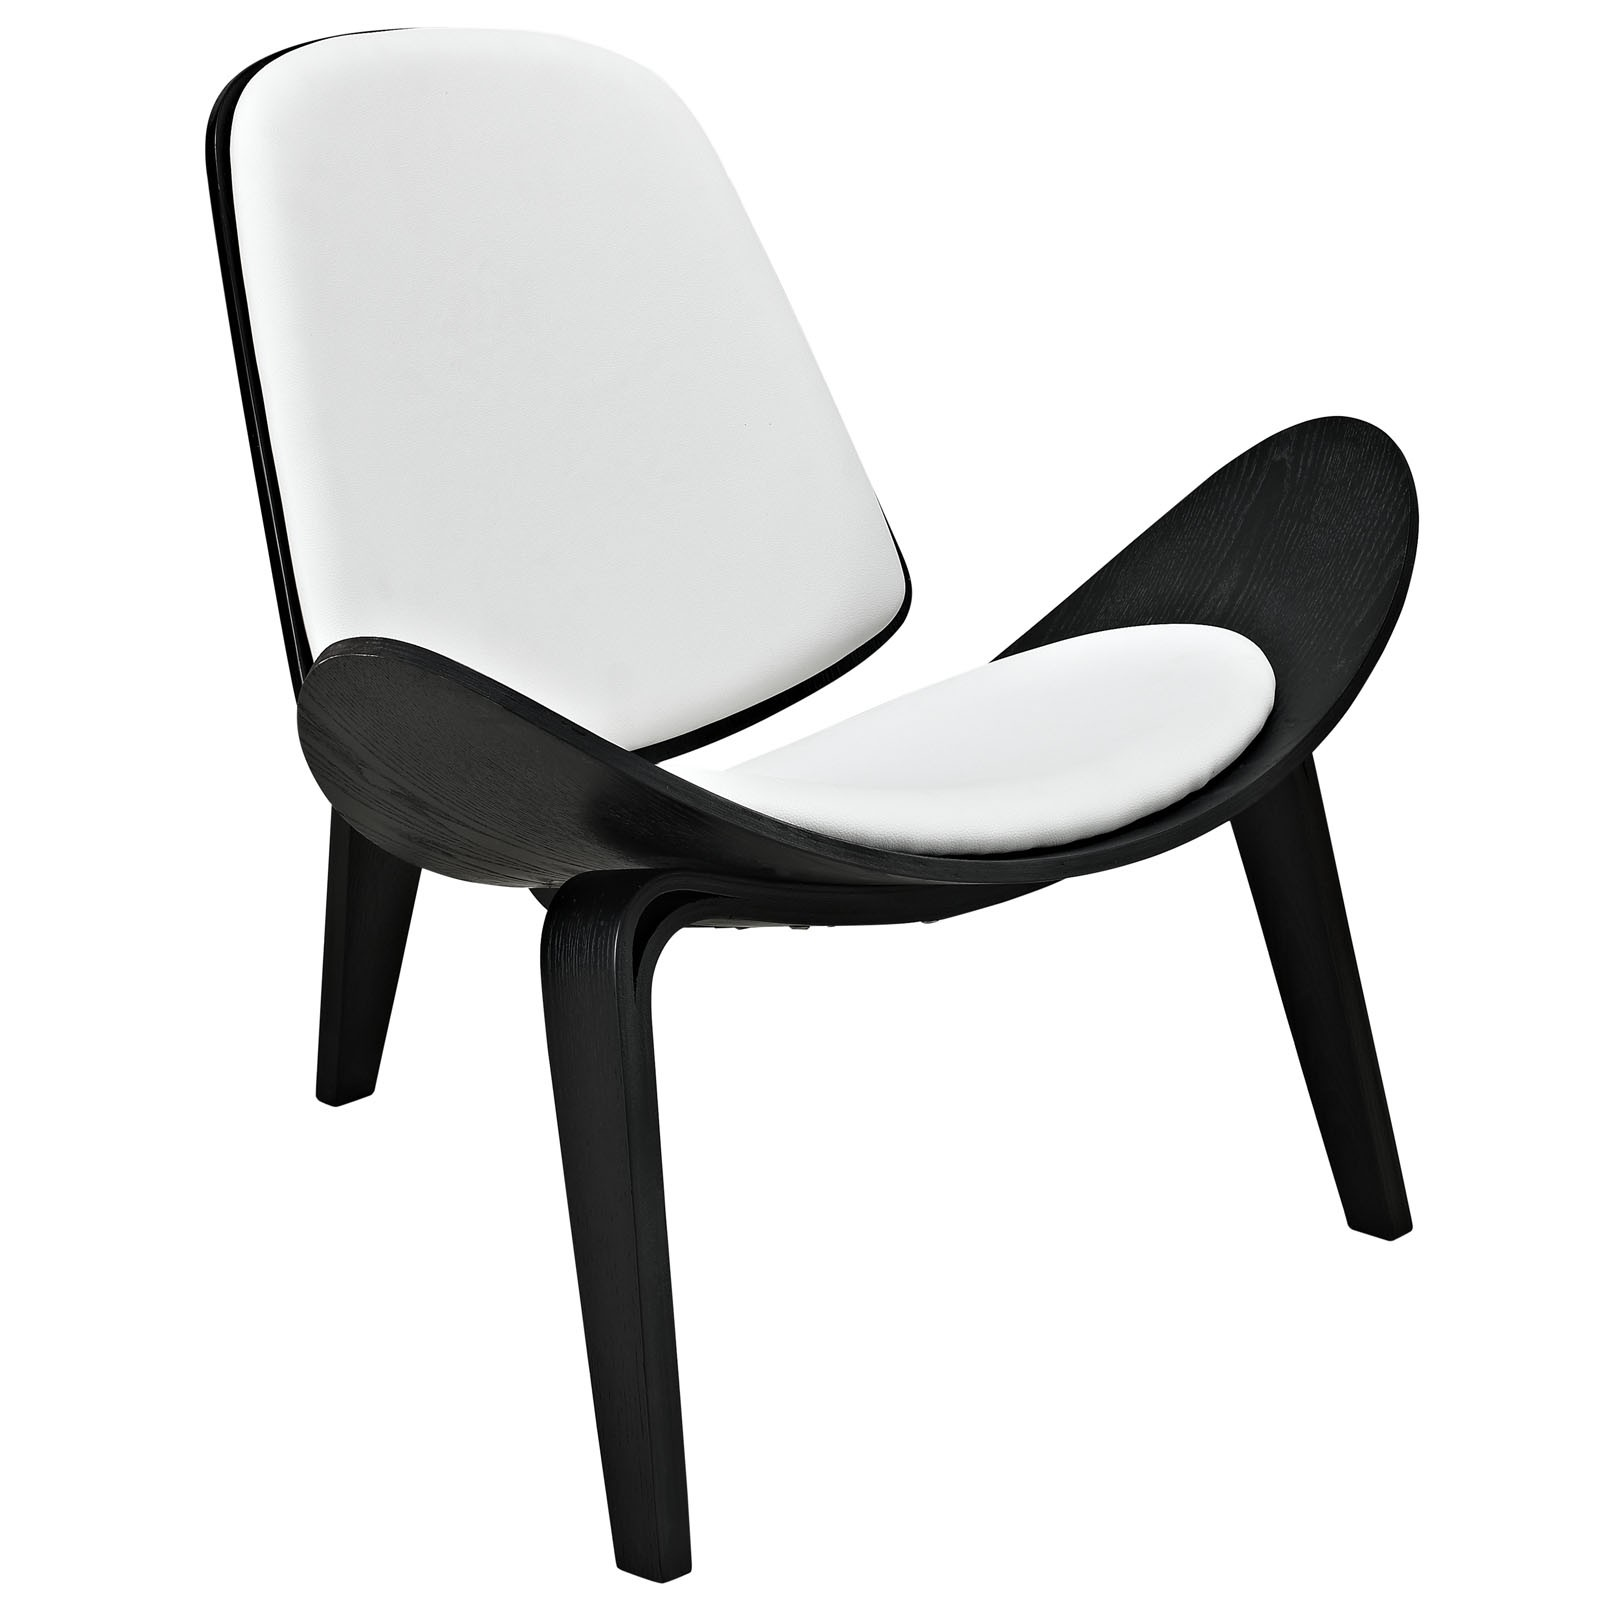 Arch Vinyl Lounge Chair-Black White